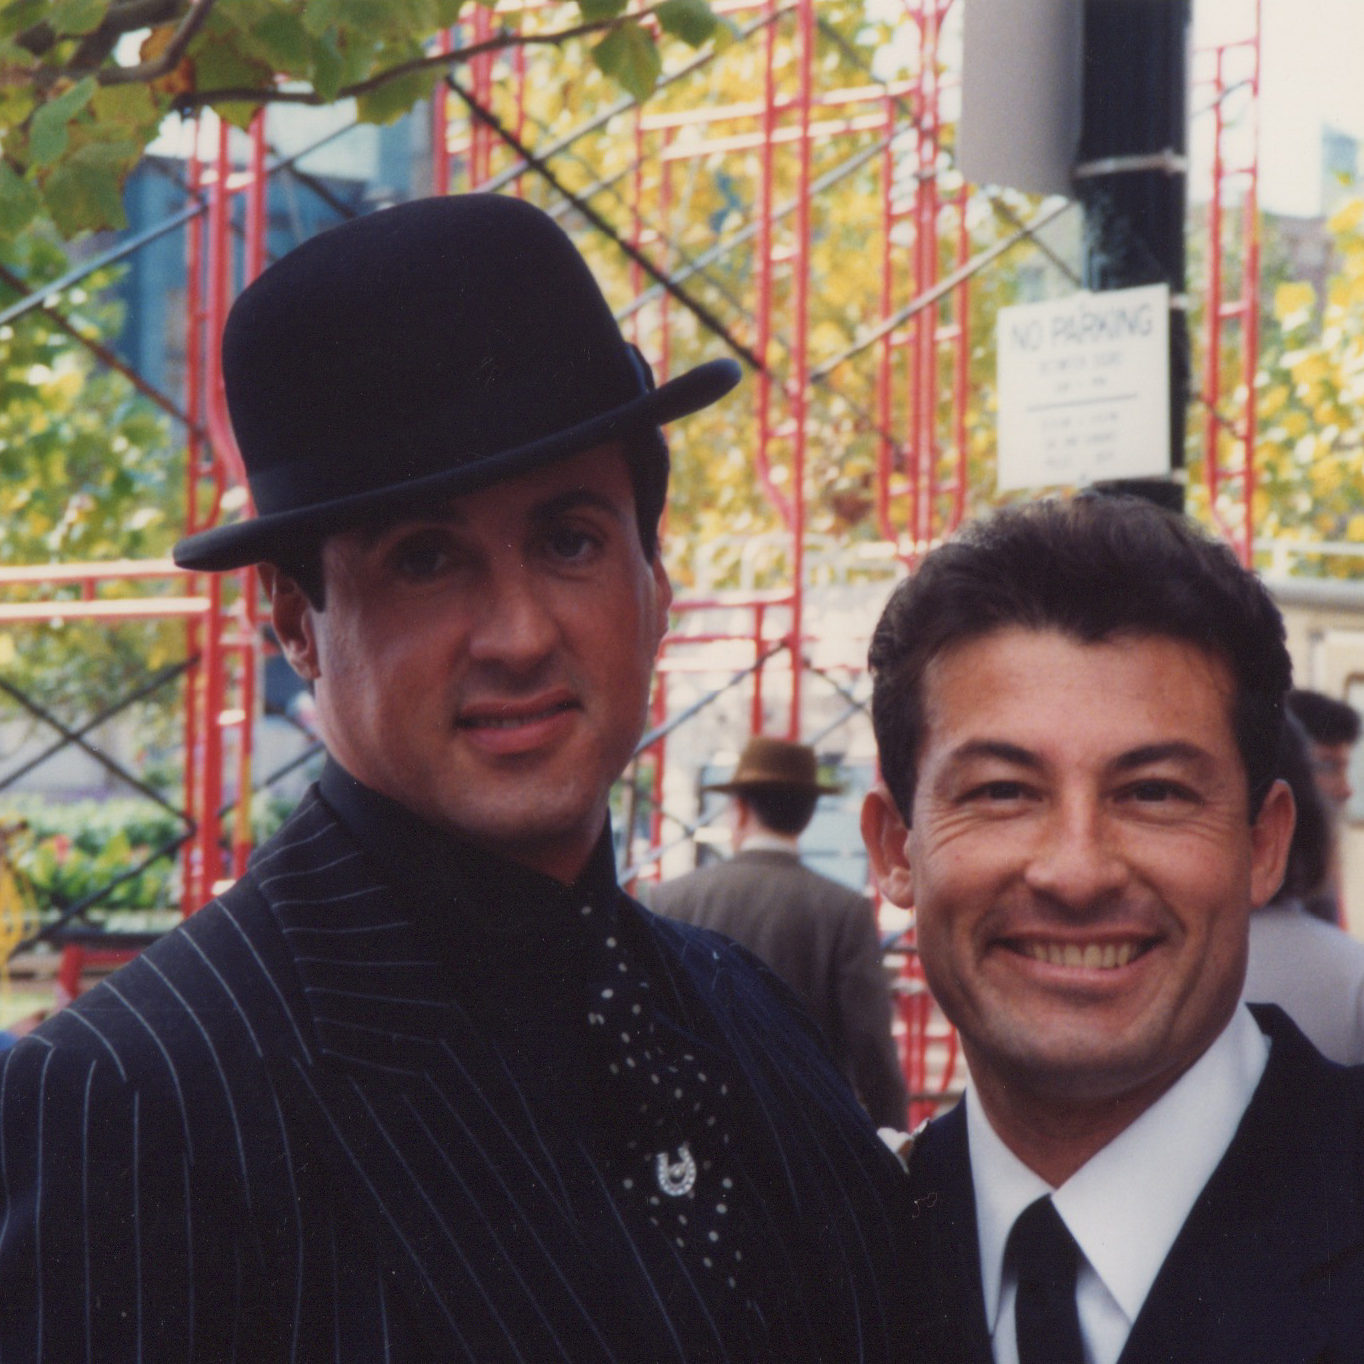 Stan Rodarte and Sylvester Stallone